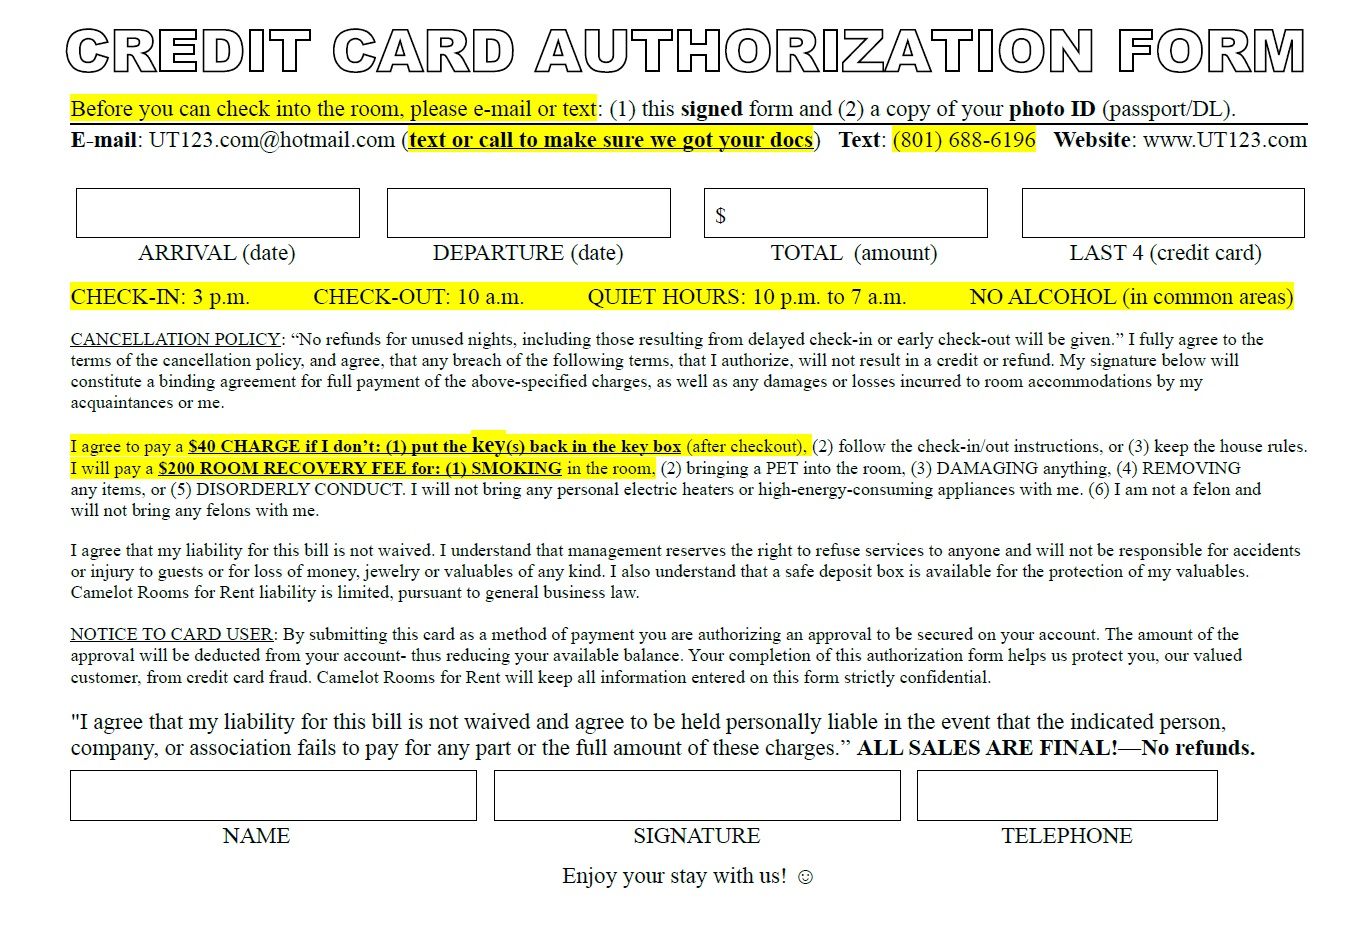 faq for camelot rooms for rent roommate rental roommate completely fill it out sign and date it 2 fax us a copy of the authorization to charge credit card so we can charge your card